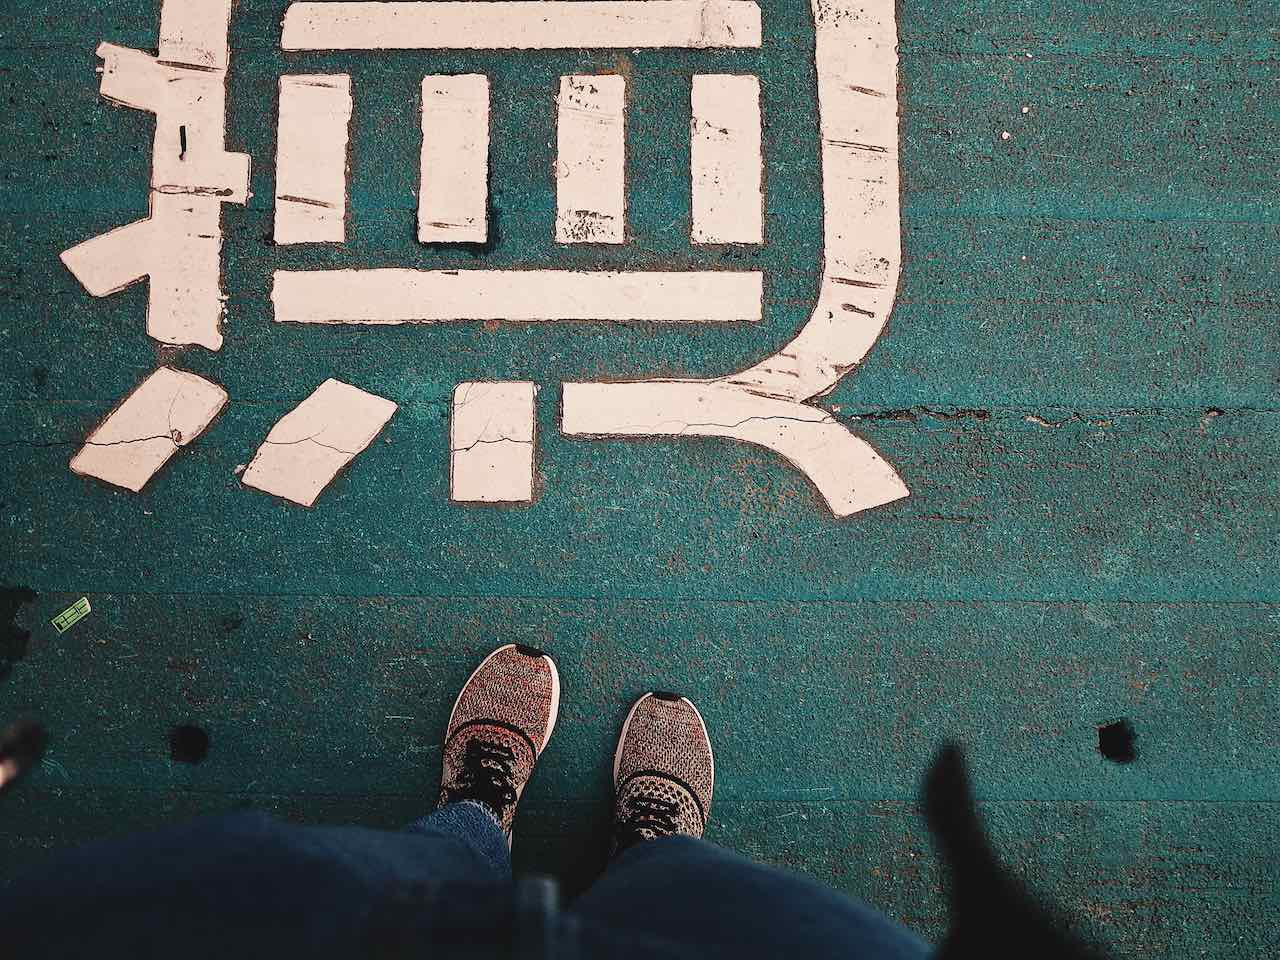 Image of feet and mandarin writing on a road